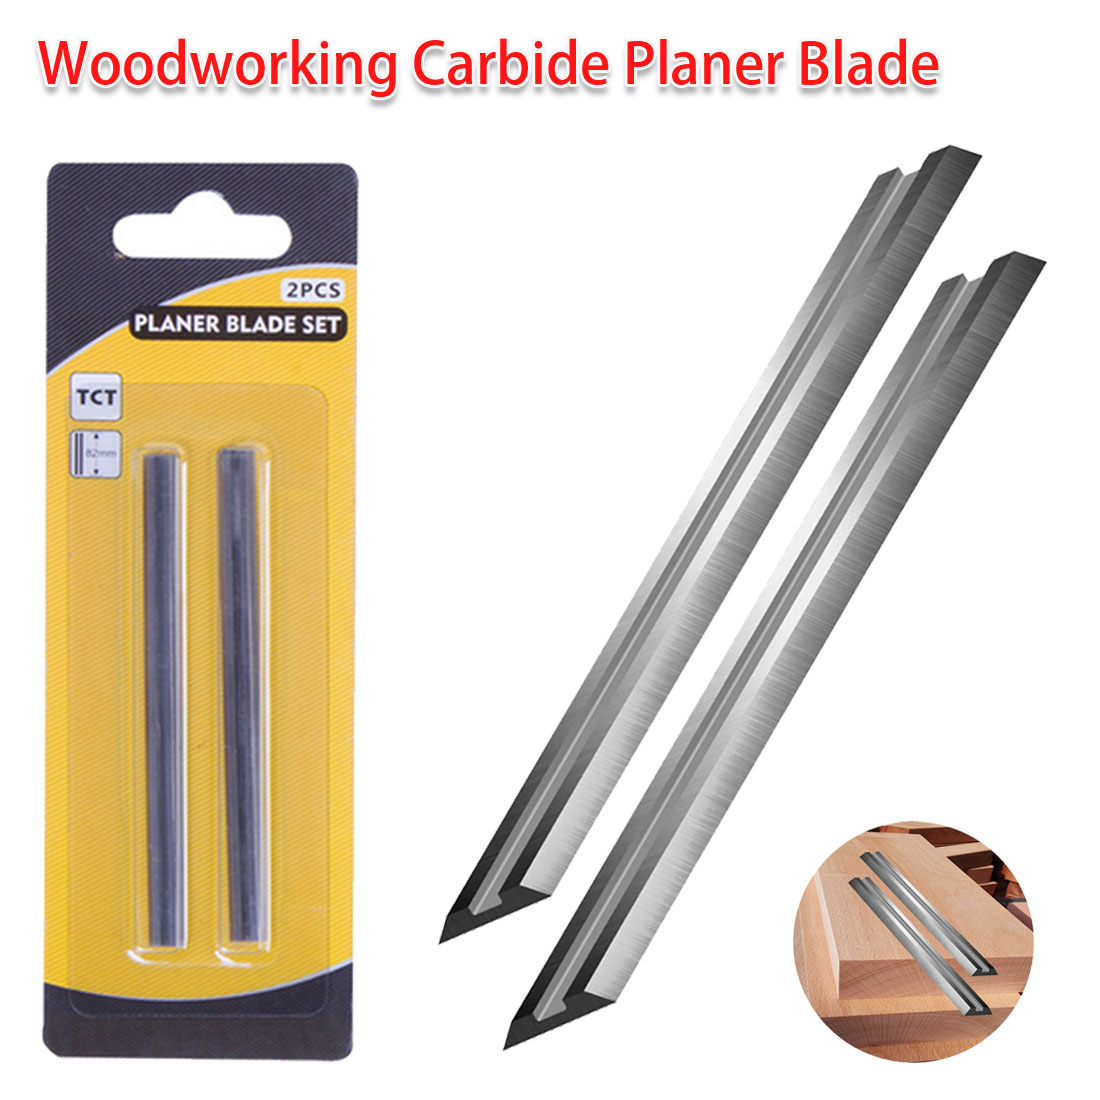 Electric Planer Blade Reversible Wood Planer Knife For Woodworking Machinery Parts Portable Carbide Planer Blade 82x5.5x1.2mm